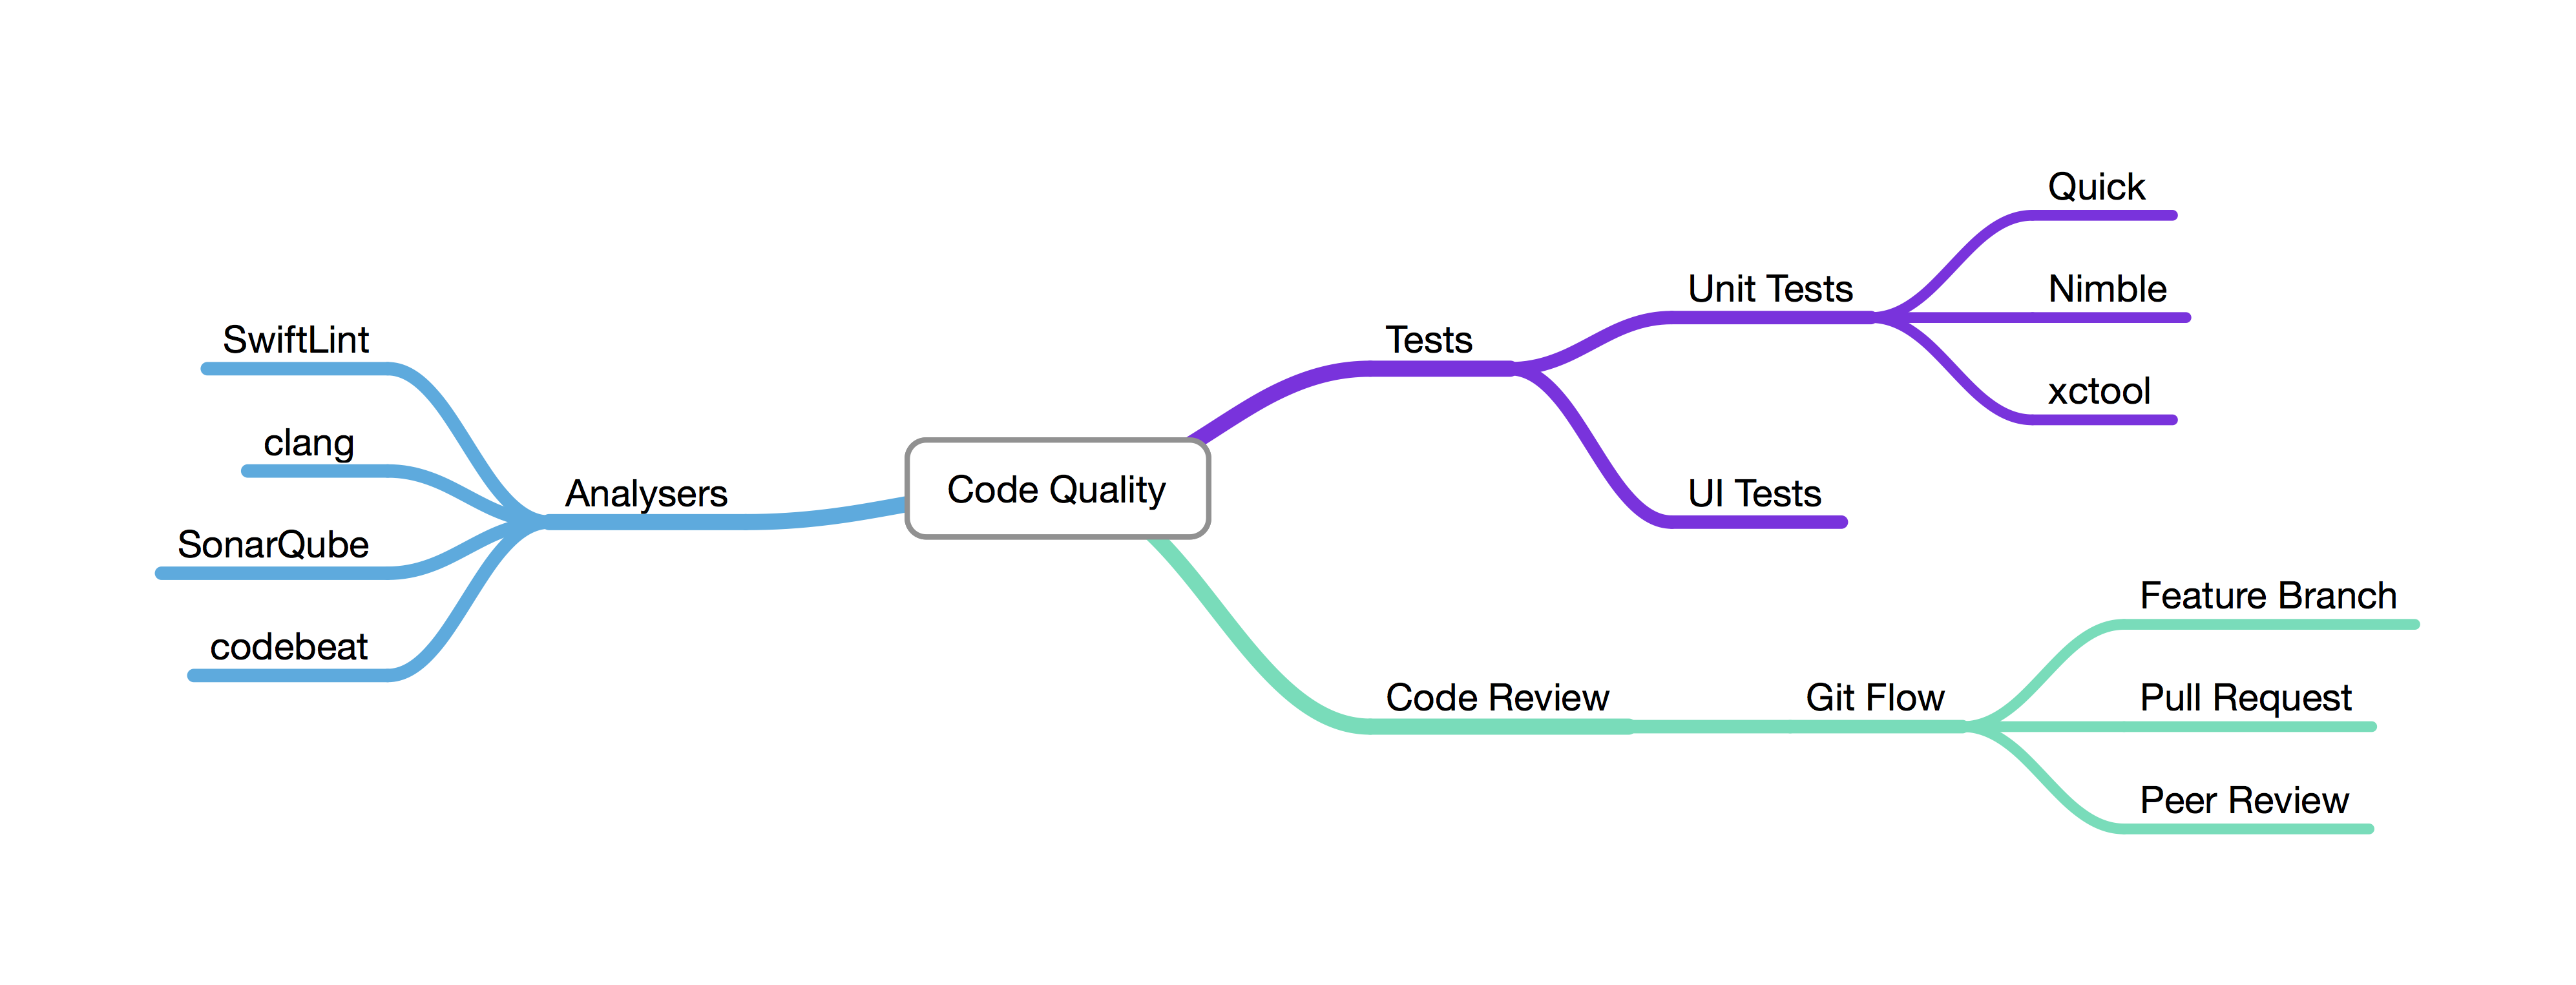 10 Is Christmas earlier this year? – code quality analyser